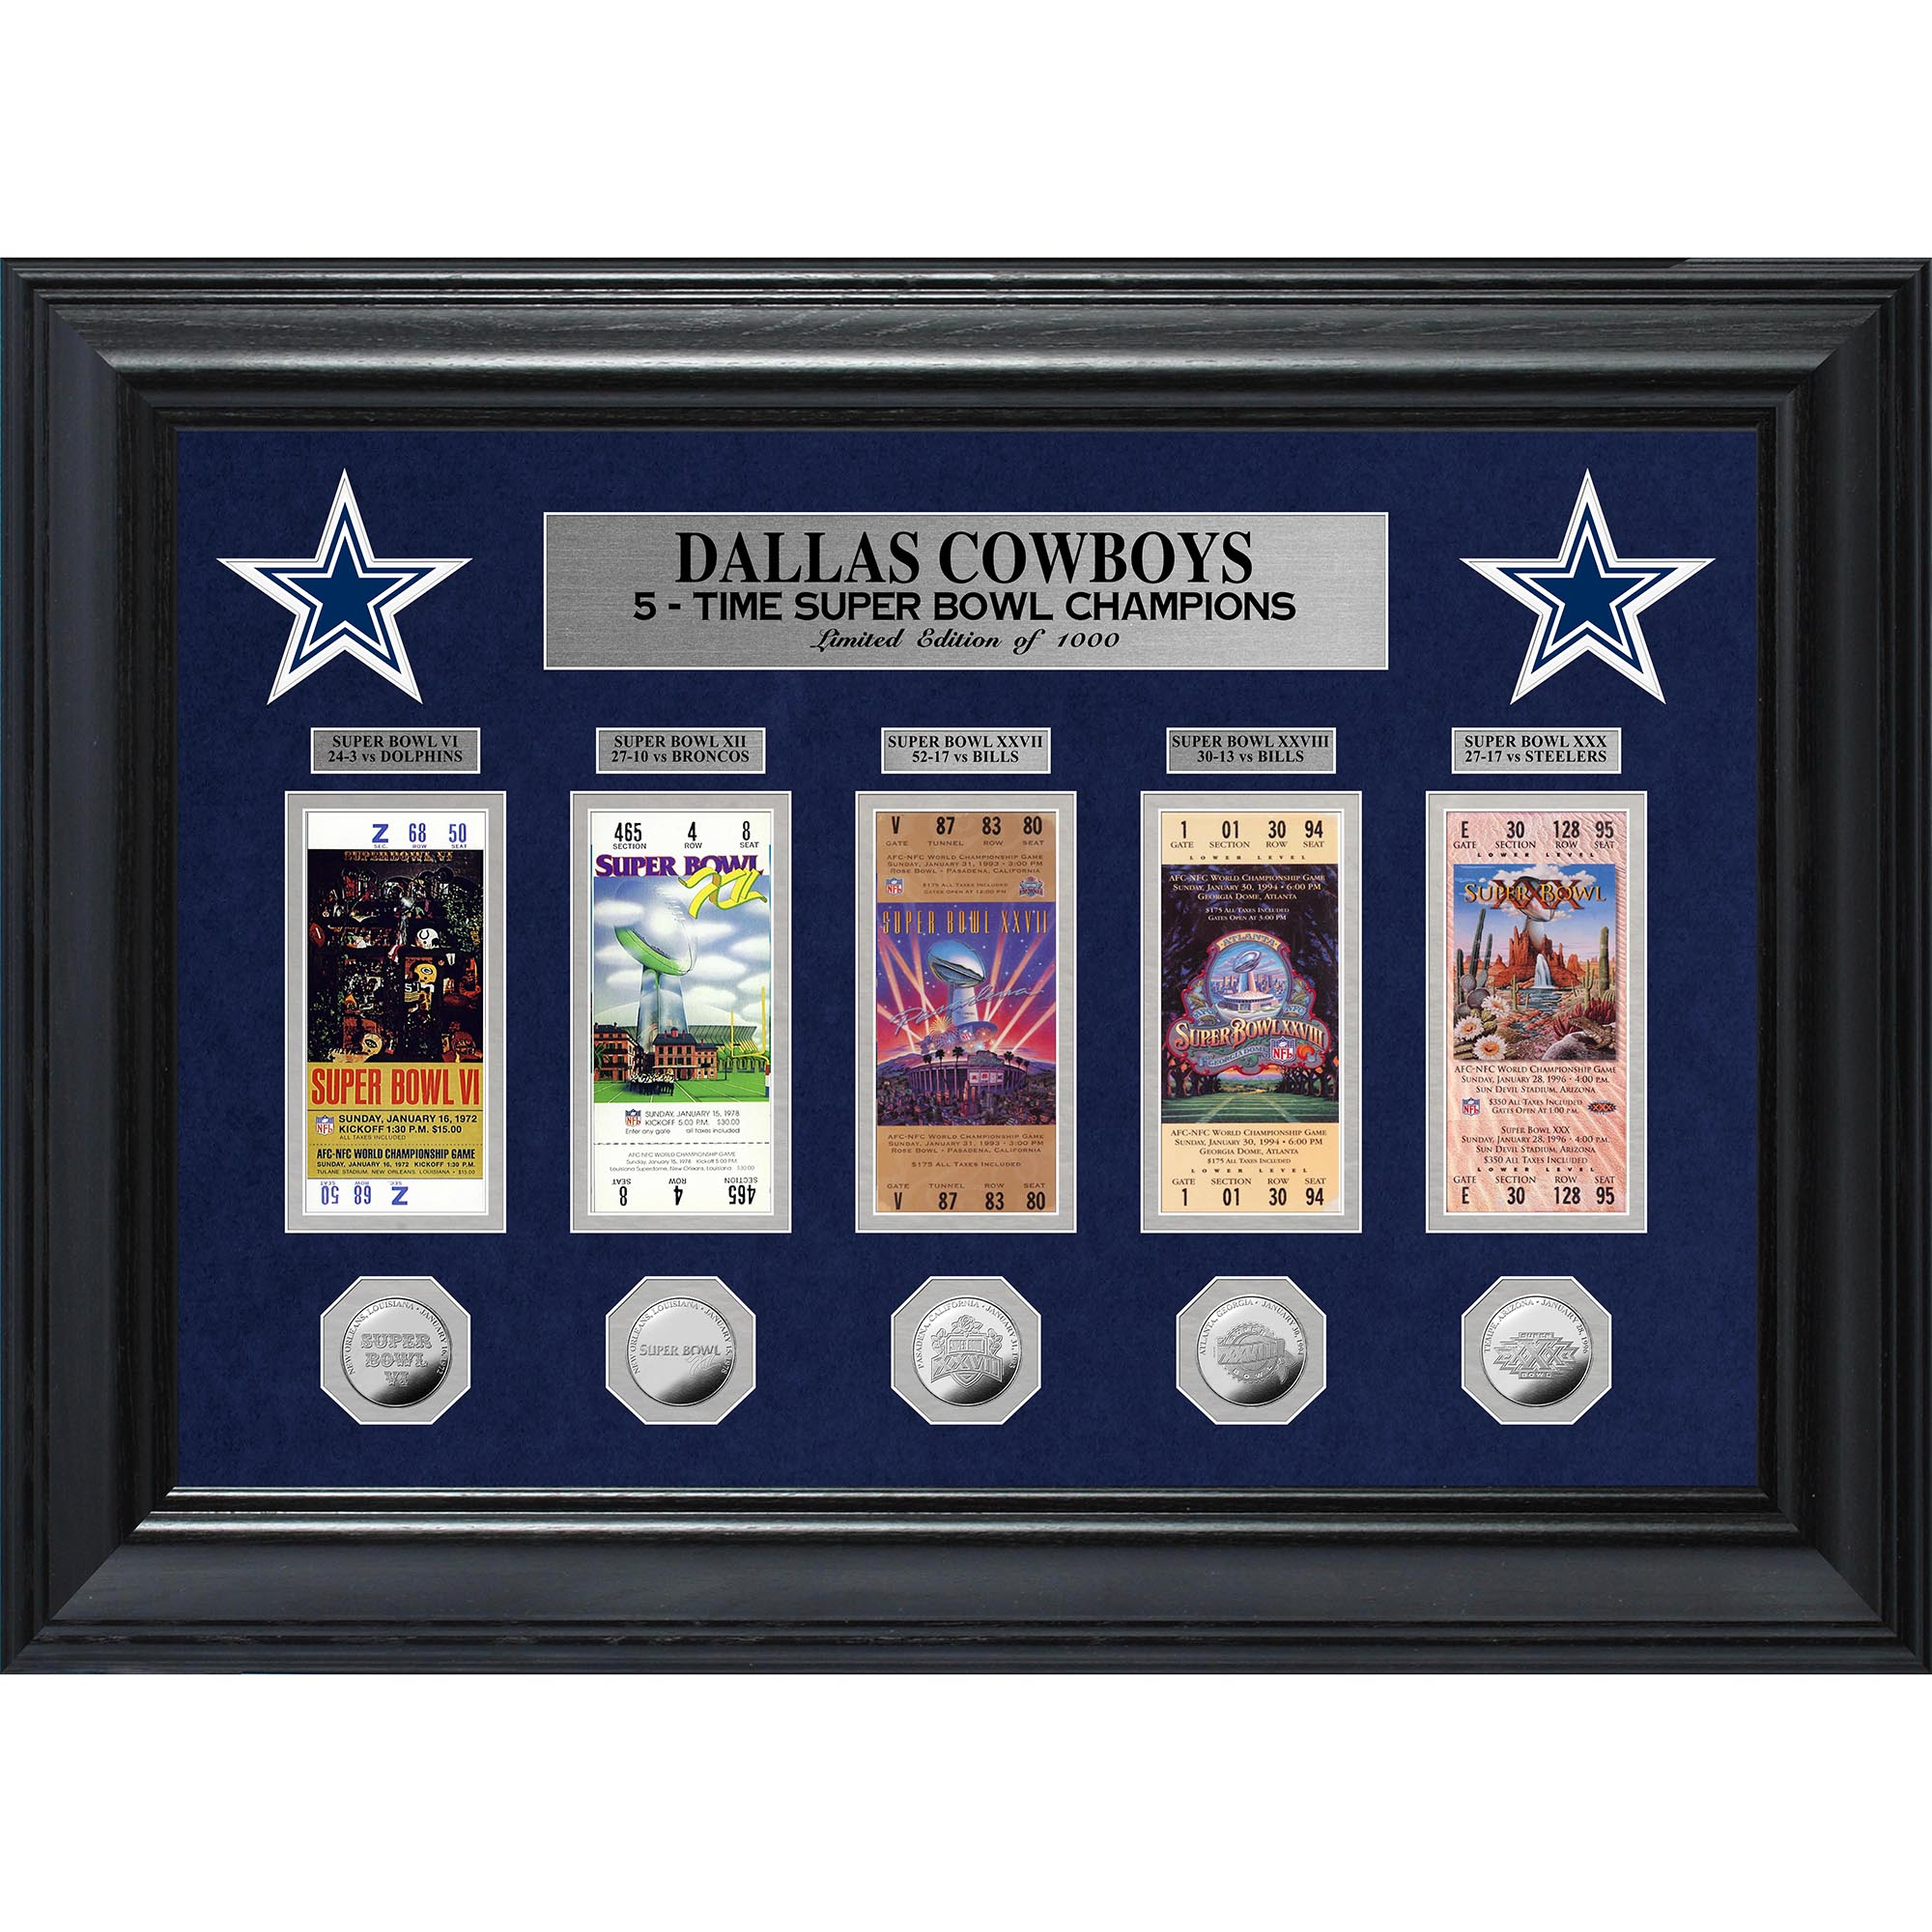 "Dallas Cowboys Highland Mint 27"" x 20"" Framed Super Bowl Ticket & Coin Collection - No Size"